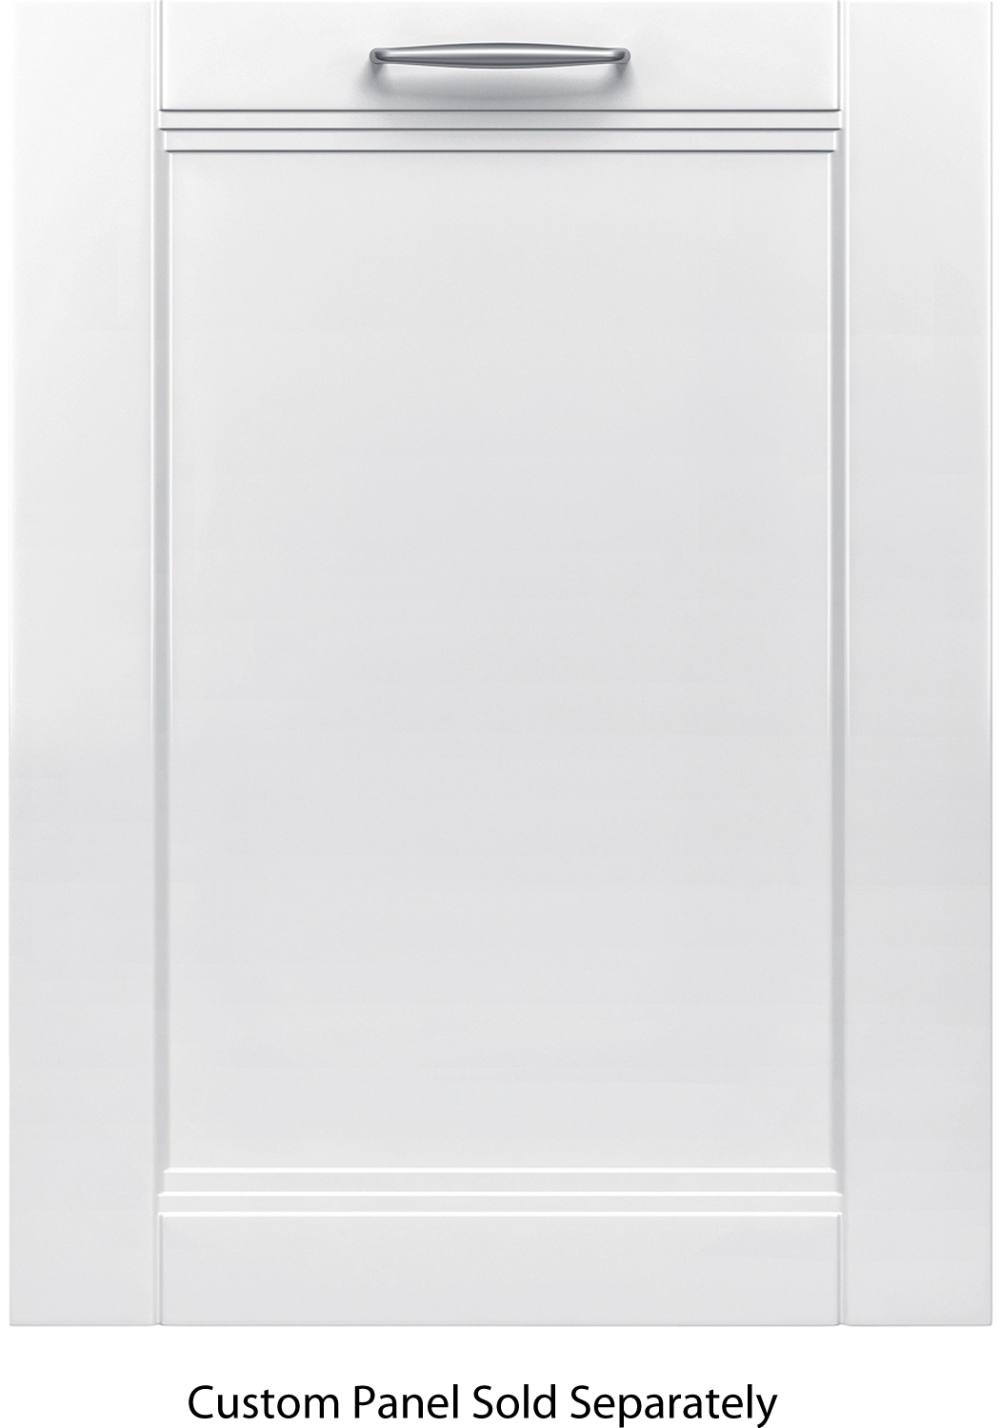 Bosch 24 300 Series Panel Ready Built In Dishwasher Shv863wd3n Built In Dishwasher Dishwasher White Paneling